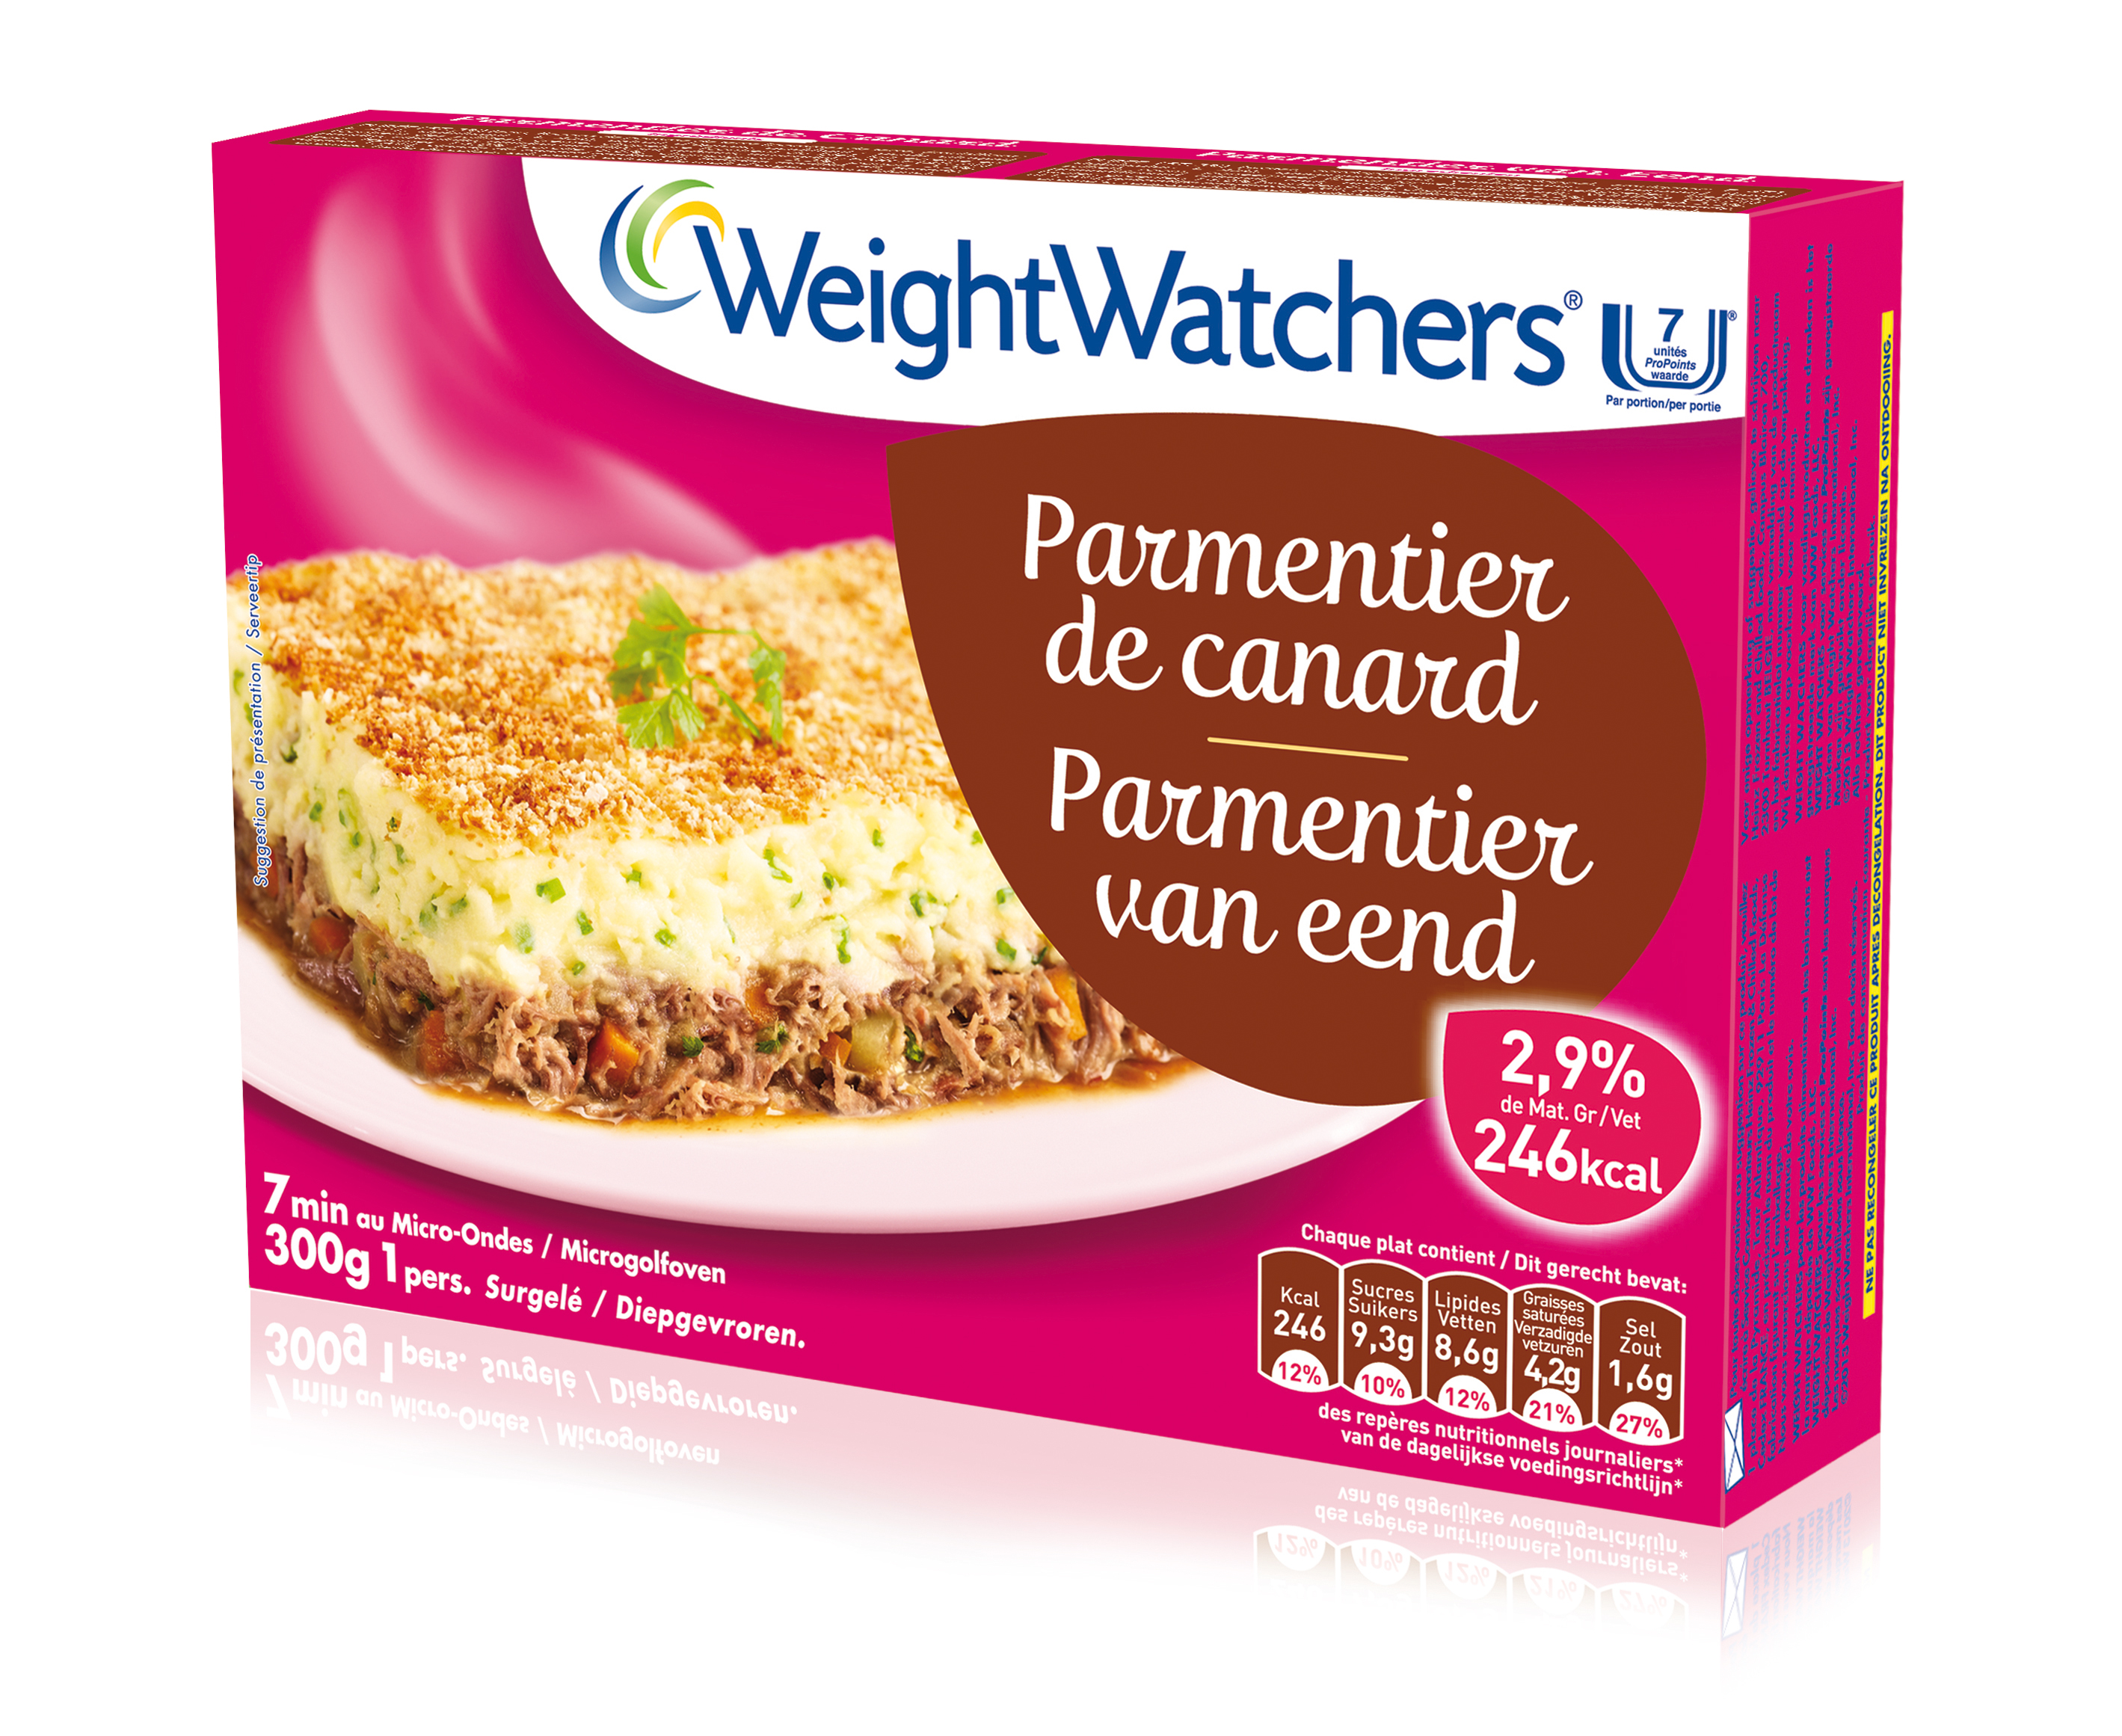 Le Parmentier De Canard Weight Watchers Surgeles De Heinz